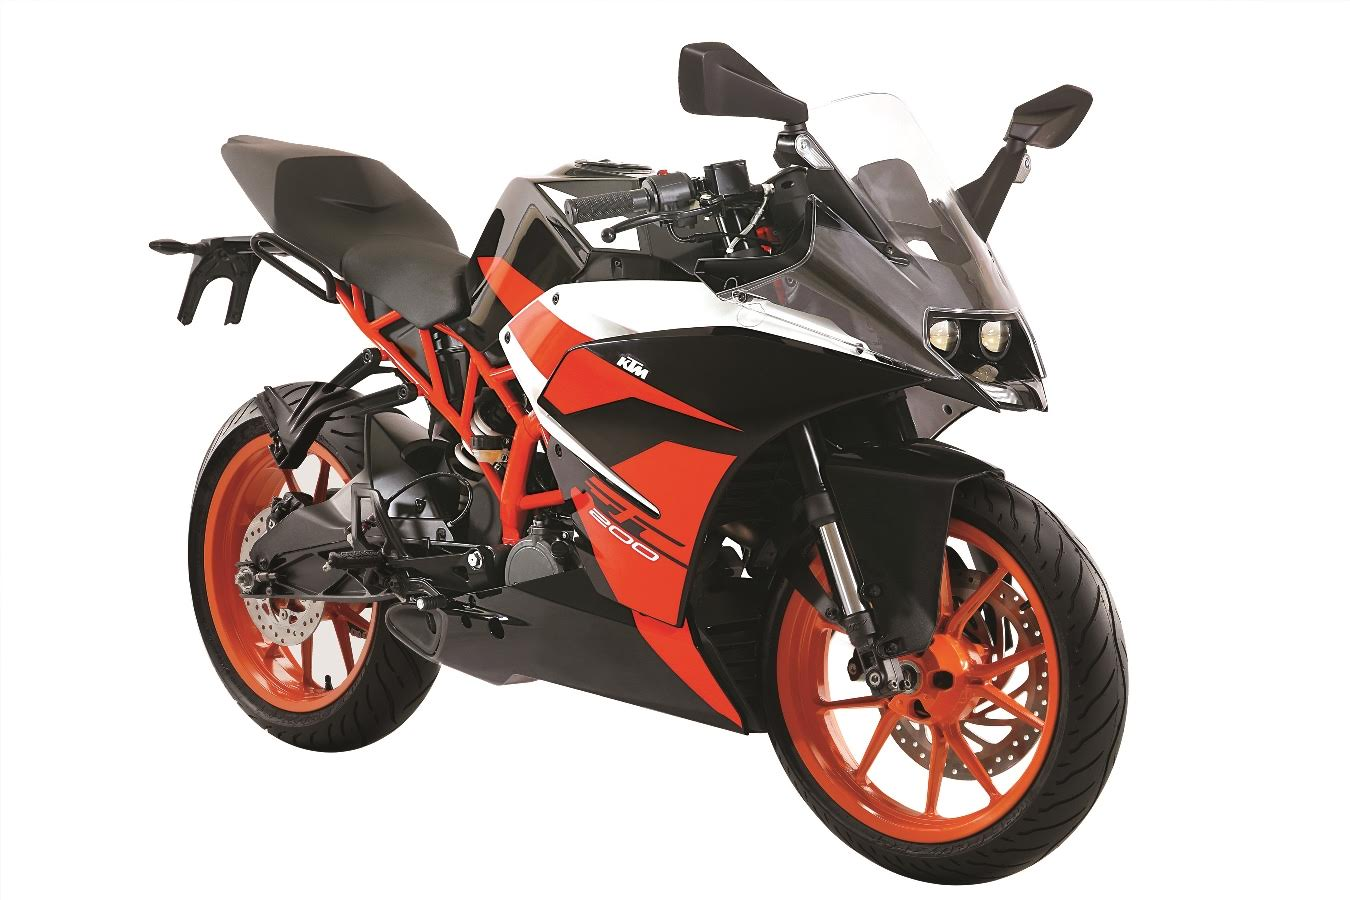 Ktm Motorcycle Prices